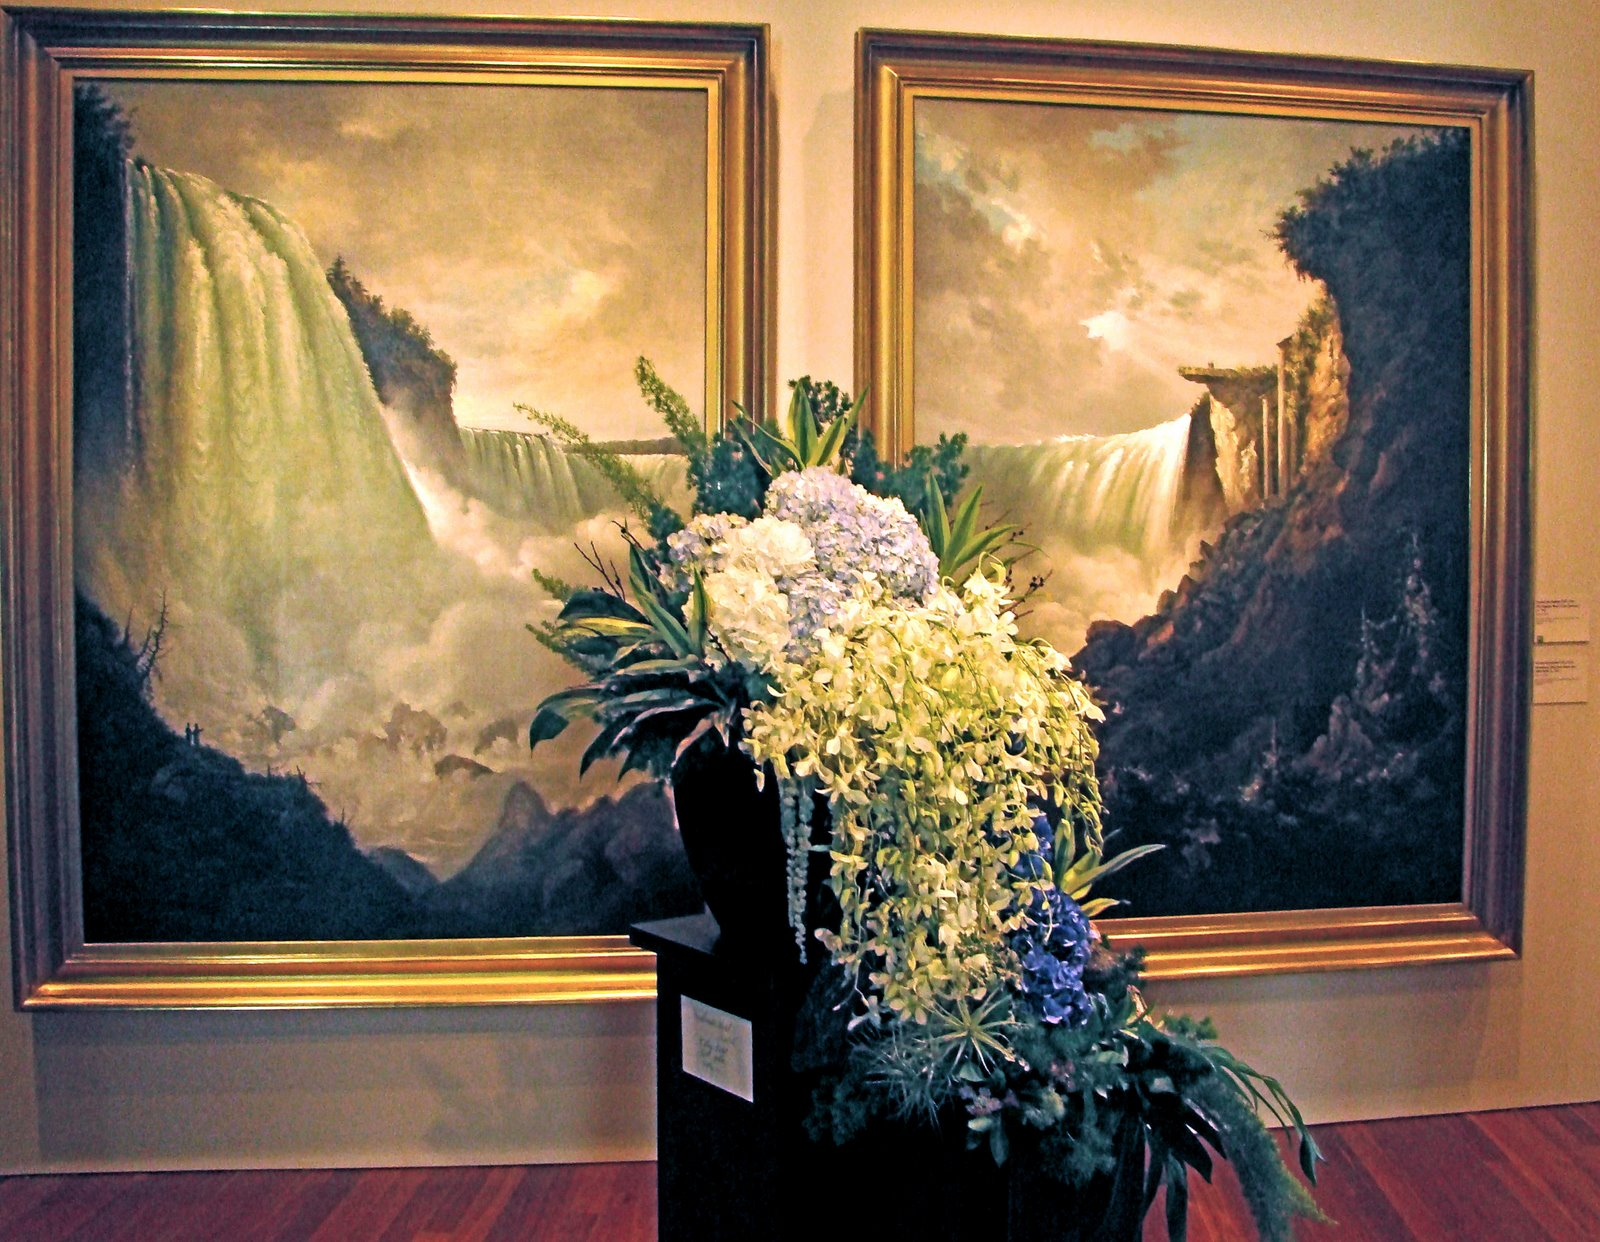 DSC04517 Bouquets to Art 2009 waterfall